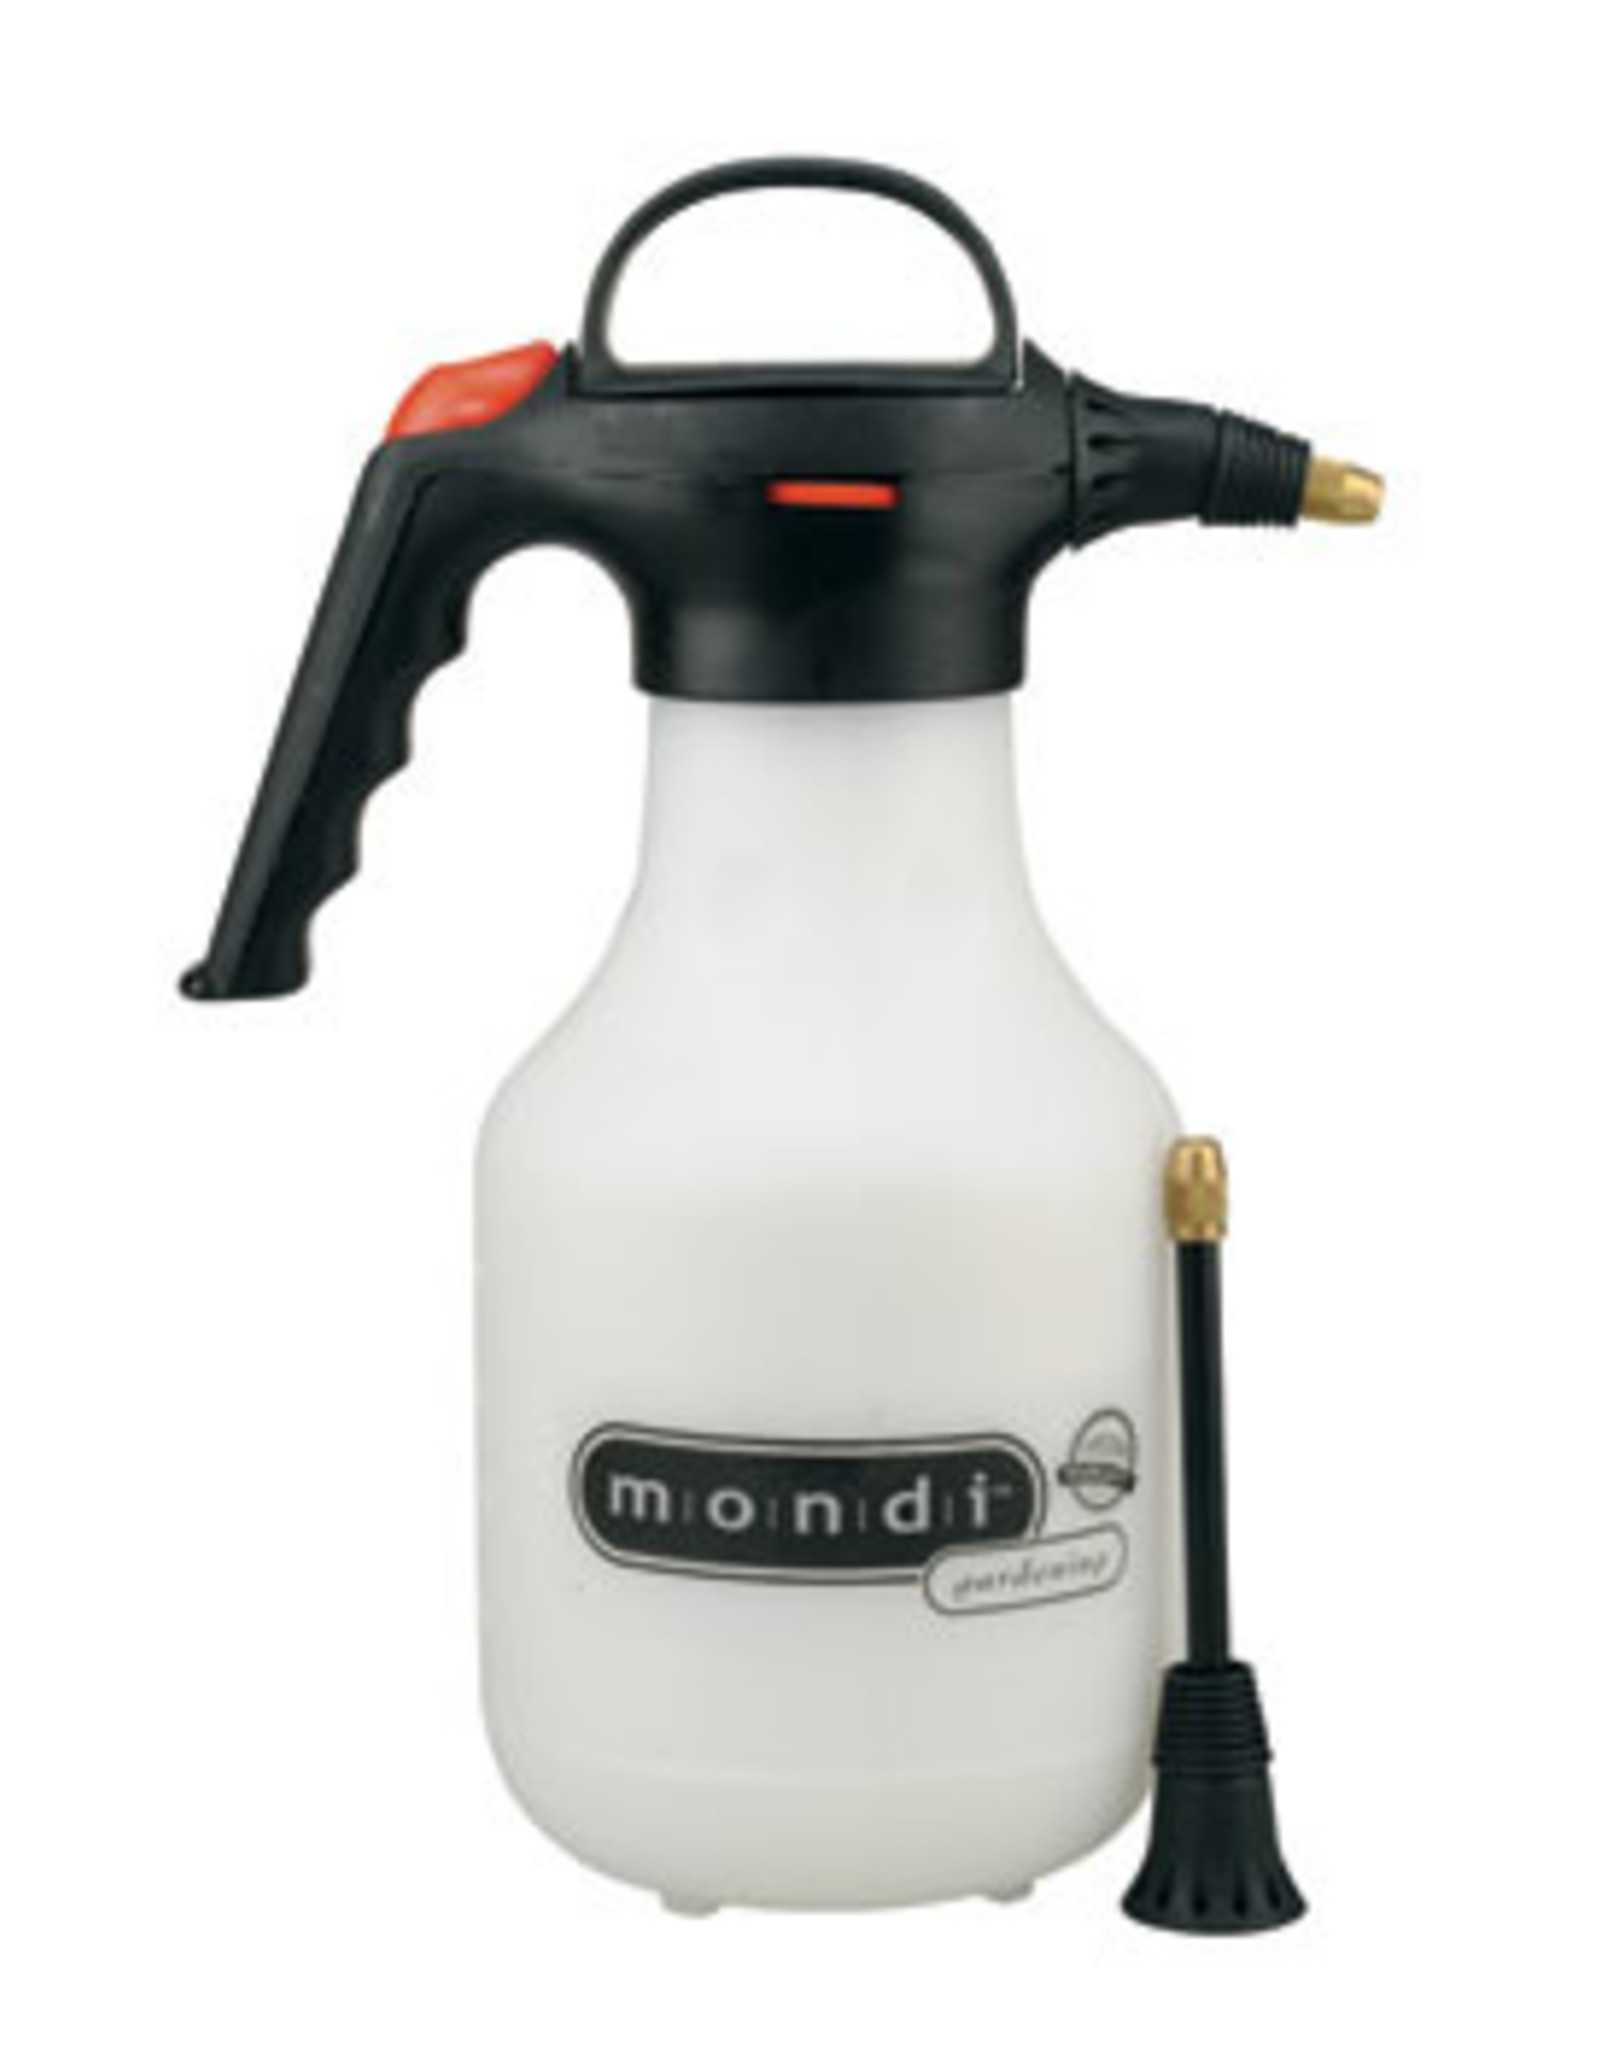 Mondi Mist'n Spray 1.5L/qt